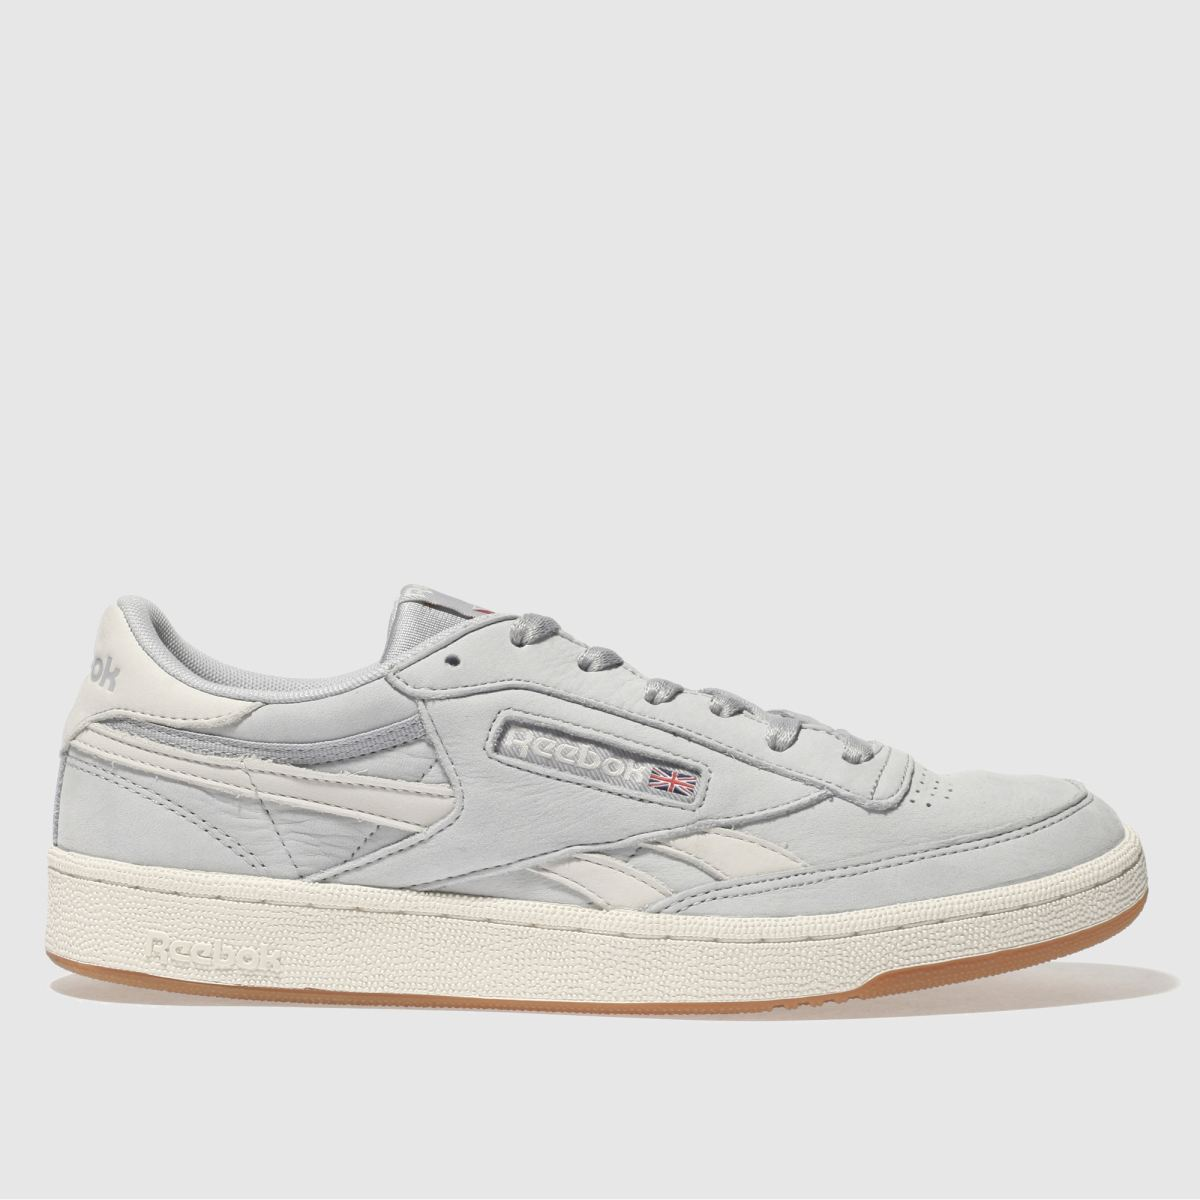 Reebok Pale Blue Revenge Plus Trainers